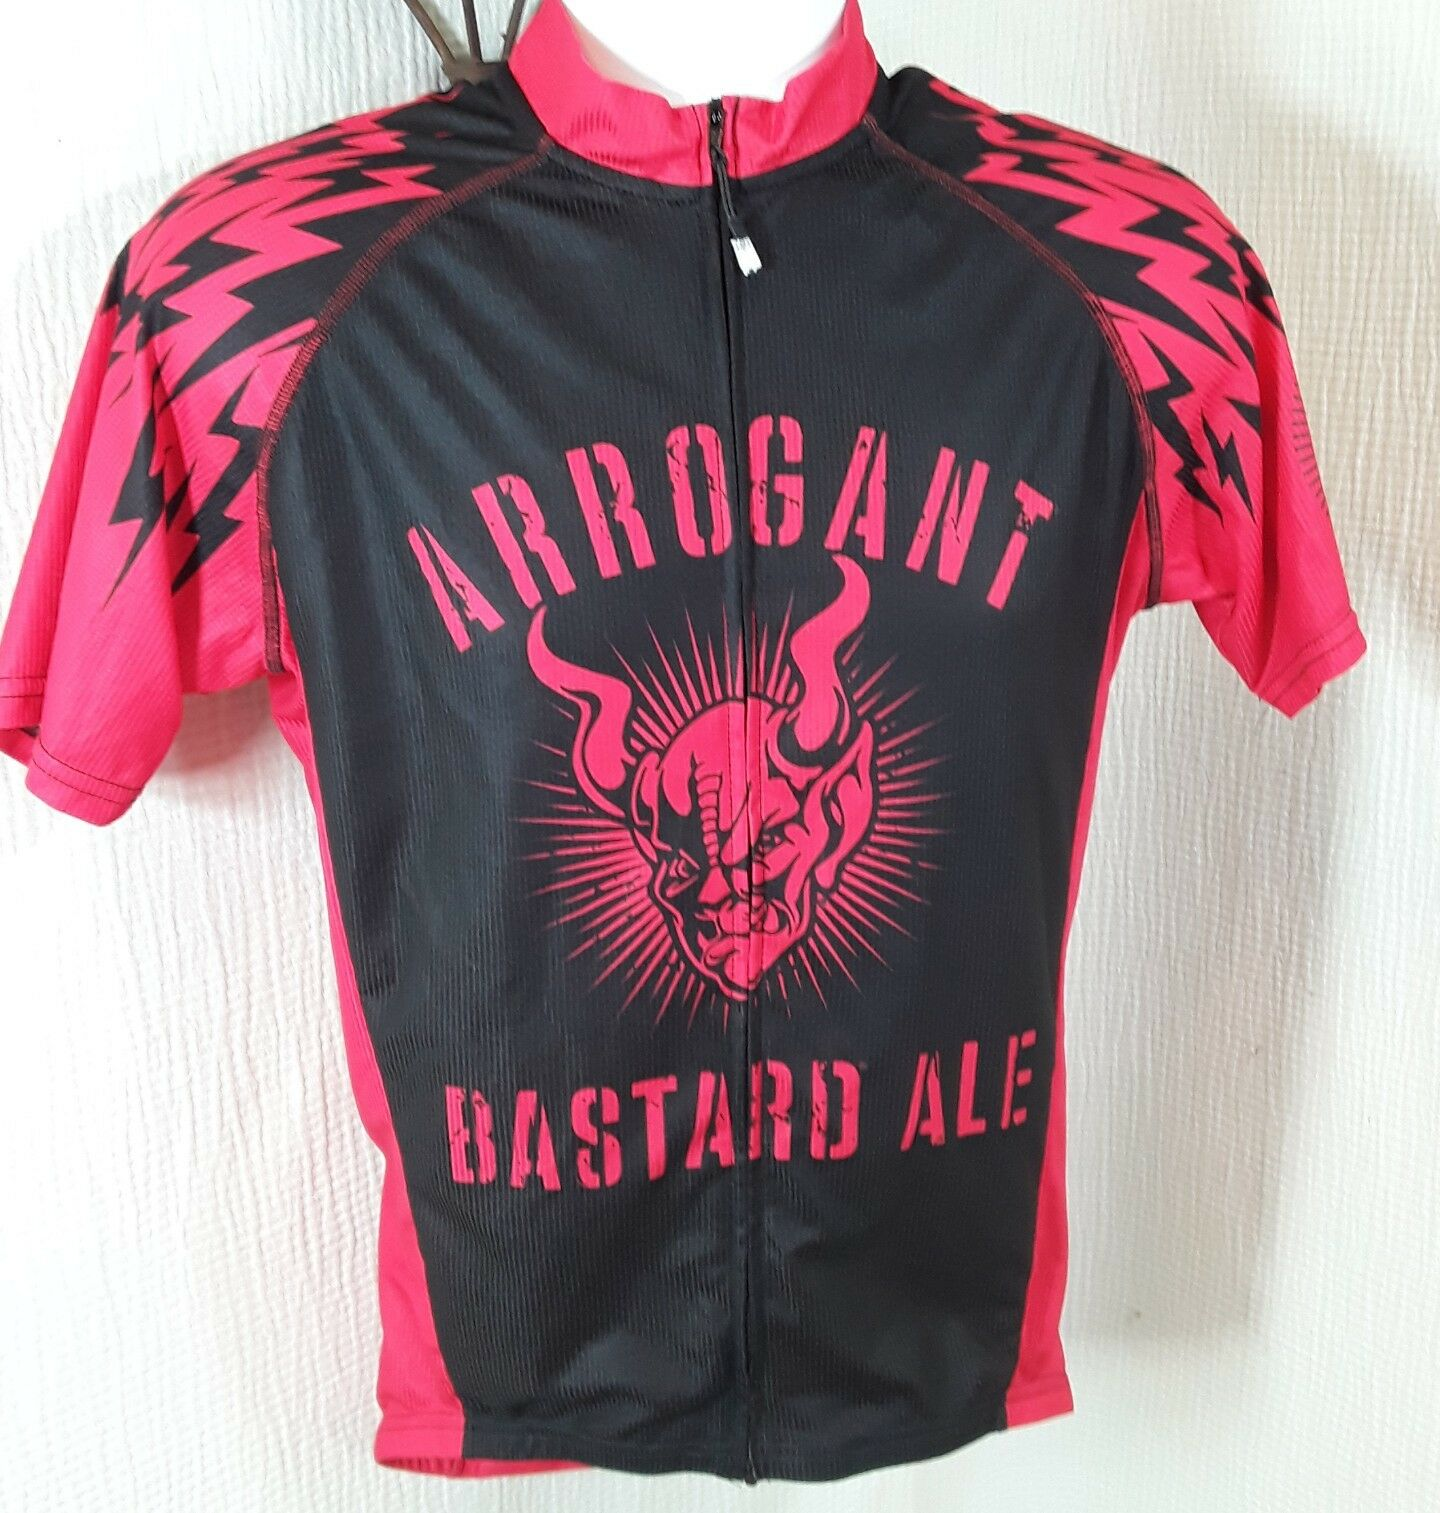 Canari Men's Cycling Jersey M  Arrogant Bastard Ale Full Zip Demon Devil 97 Red  support wholesale retail